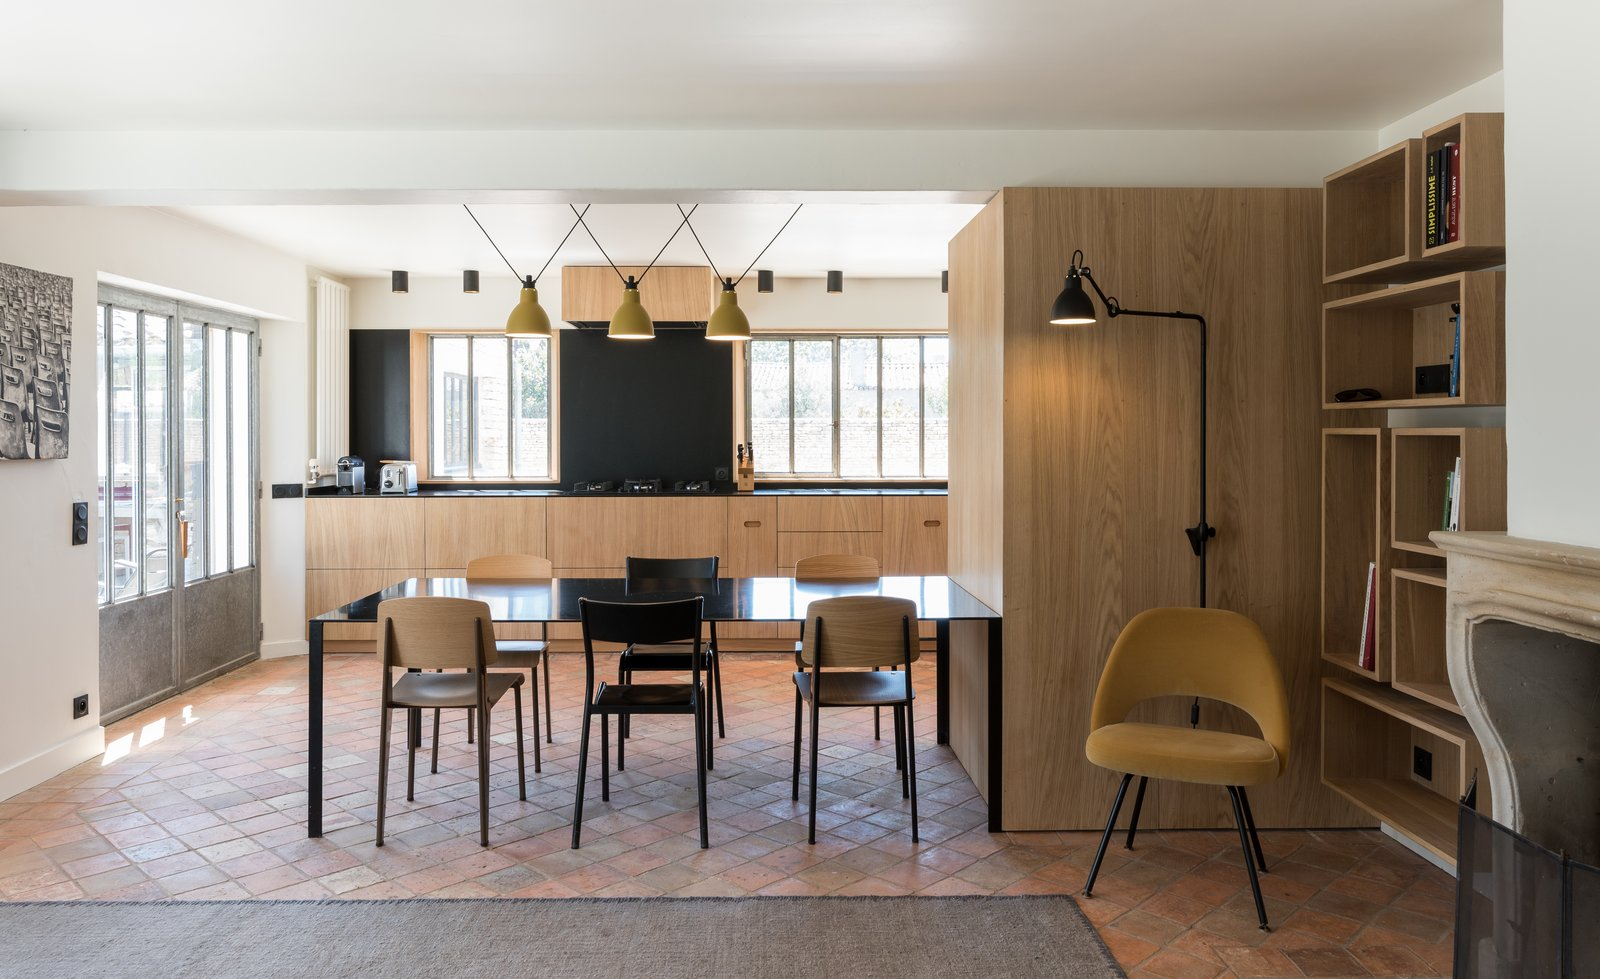 Photo 1 of 12 in A Seaside House in France Gets a Wonderful Wood-Wrapped Remodel